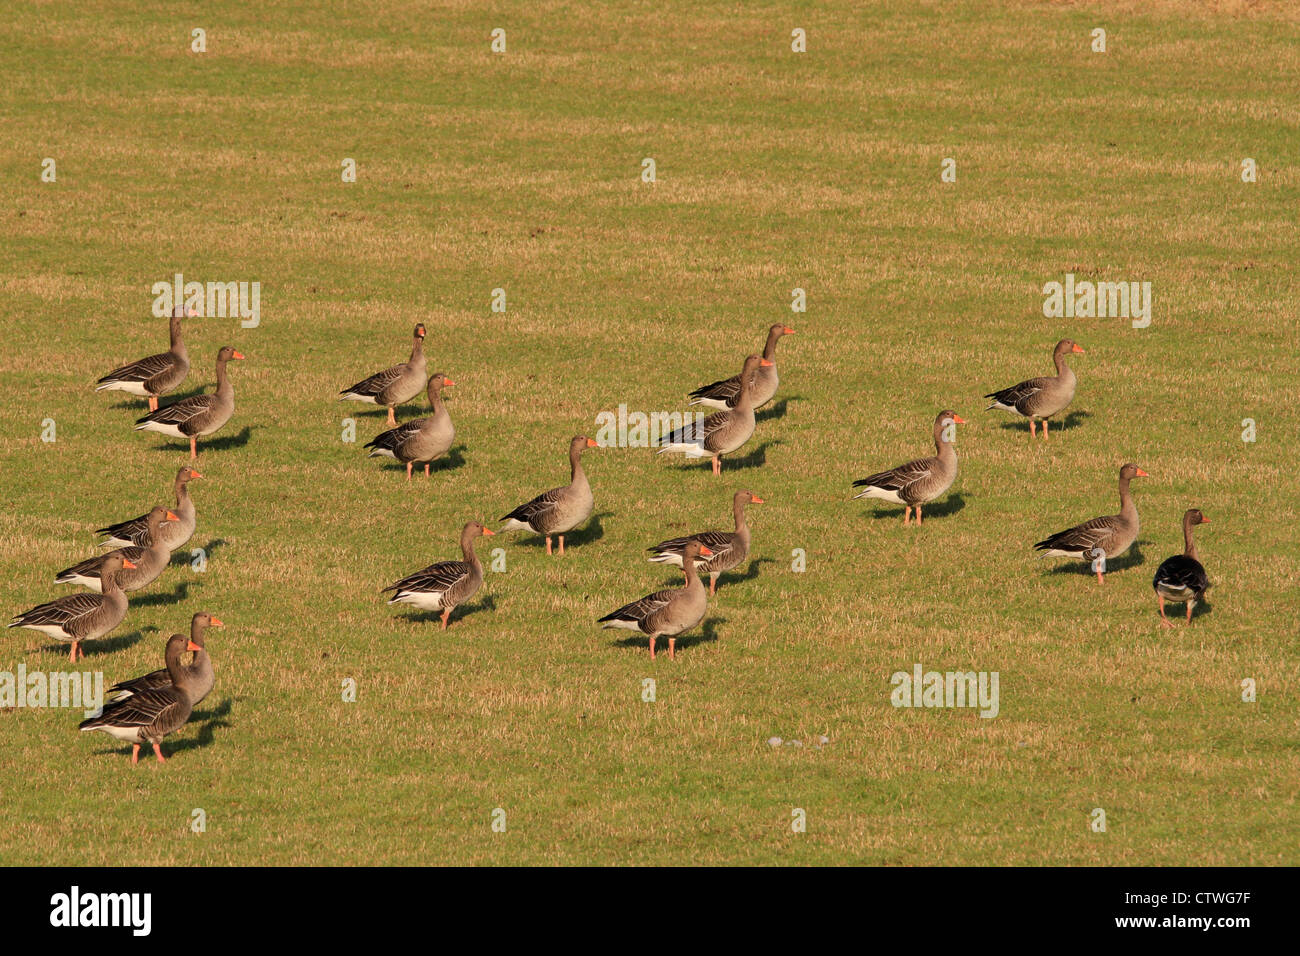 Greylag geese in field, Orkney isles - Stock Image